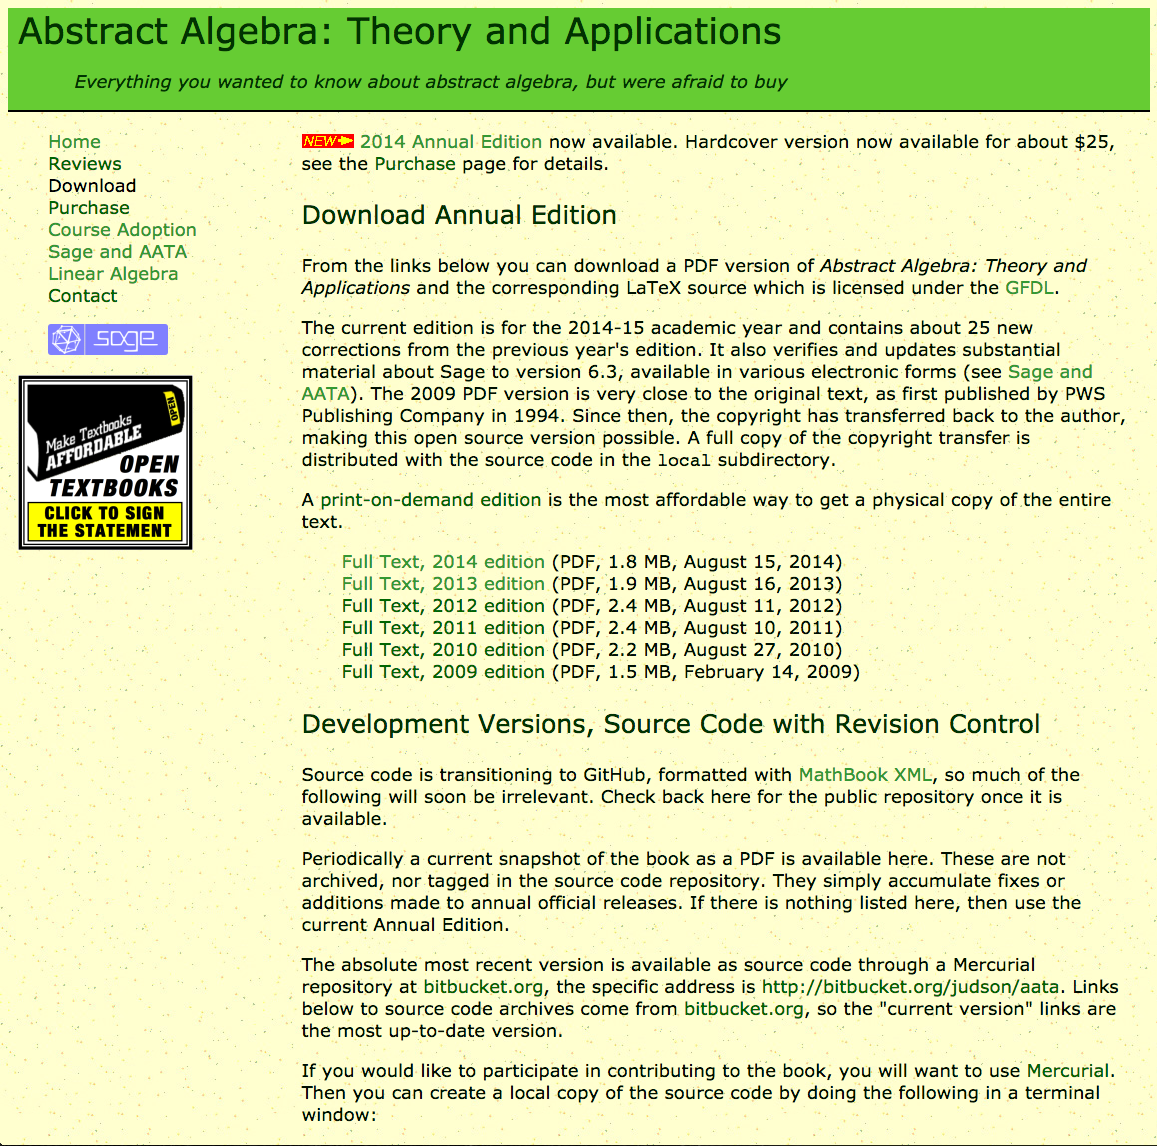 Mathematics - Open Educational Resources - LibGuides at